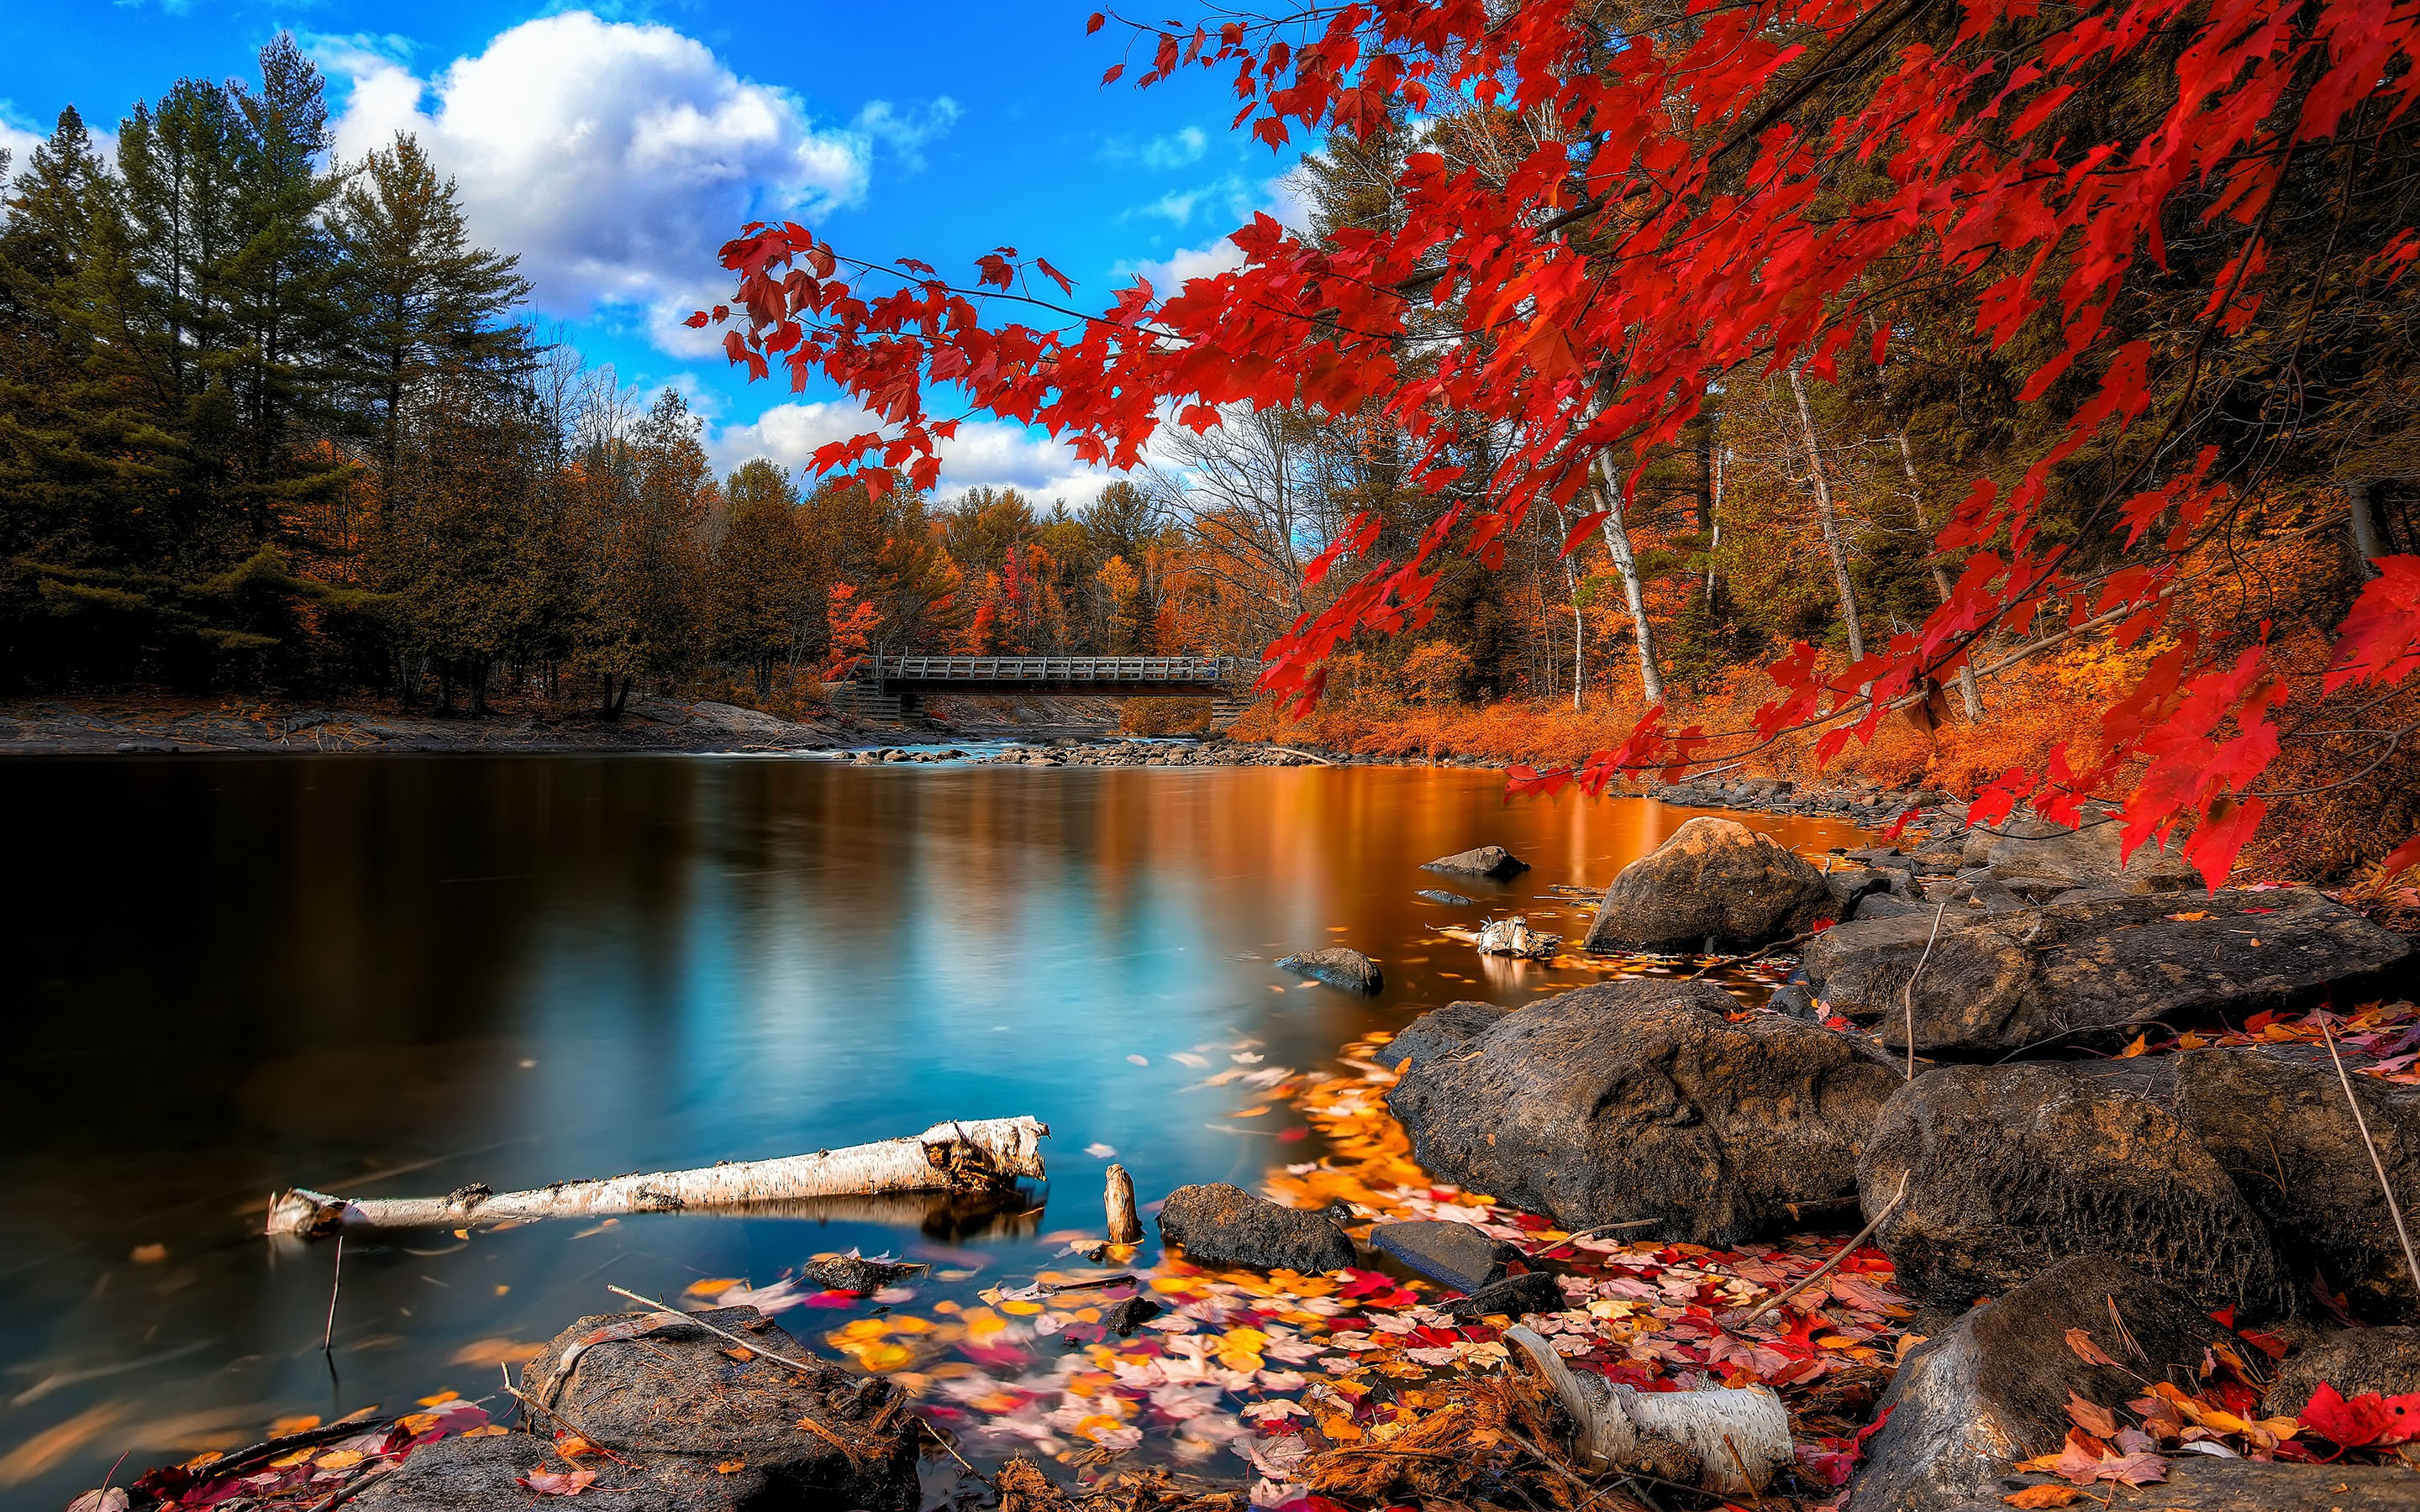 macbook pro wallpaper with autumn forest and river in 2880x1800 - hd